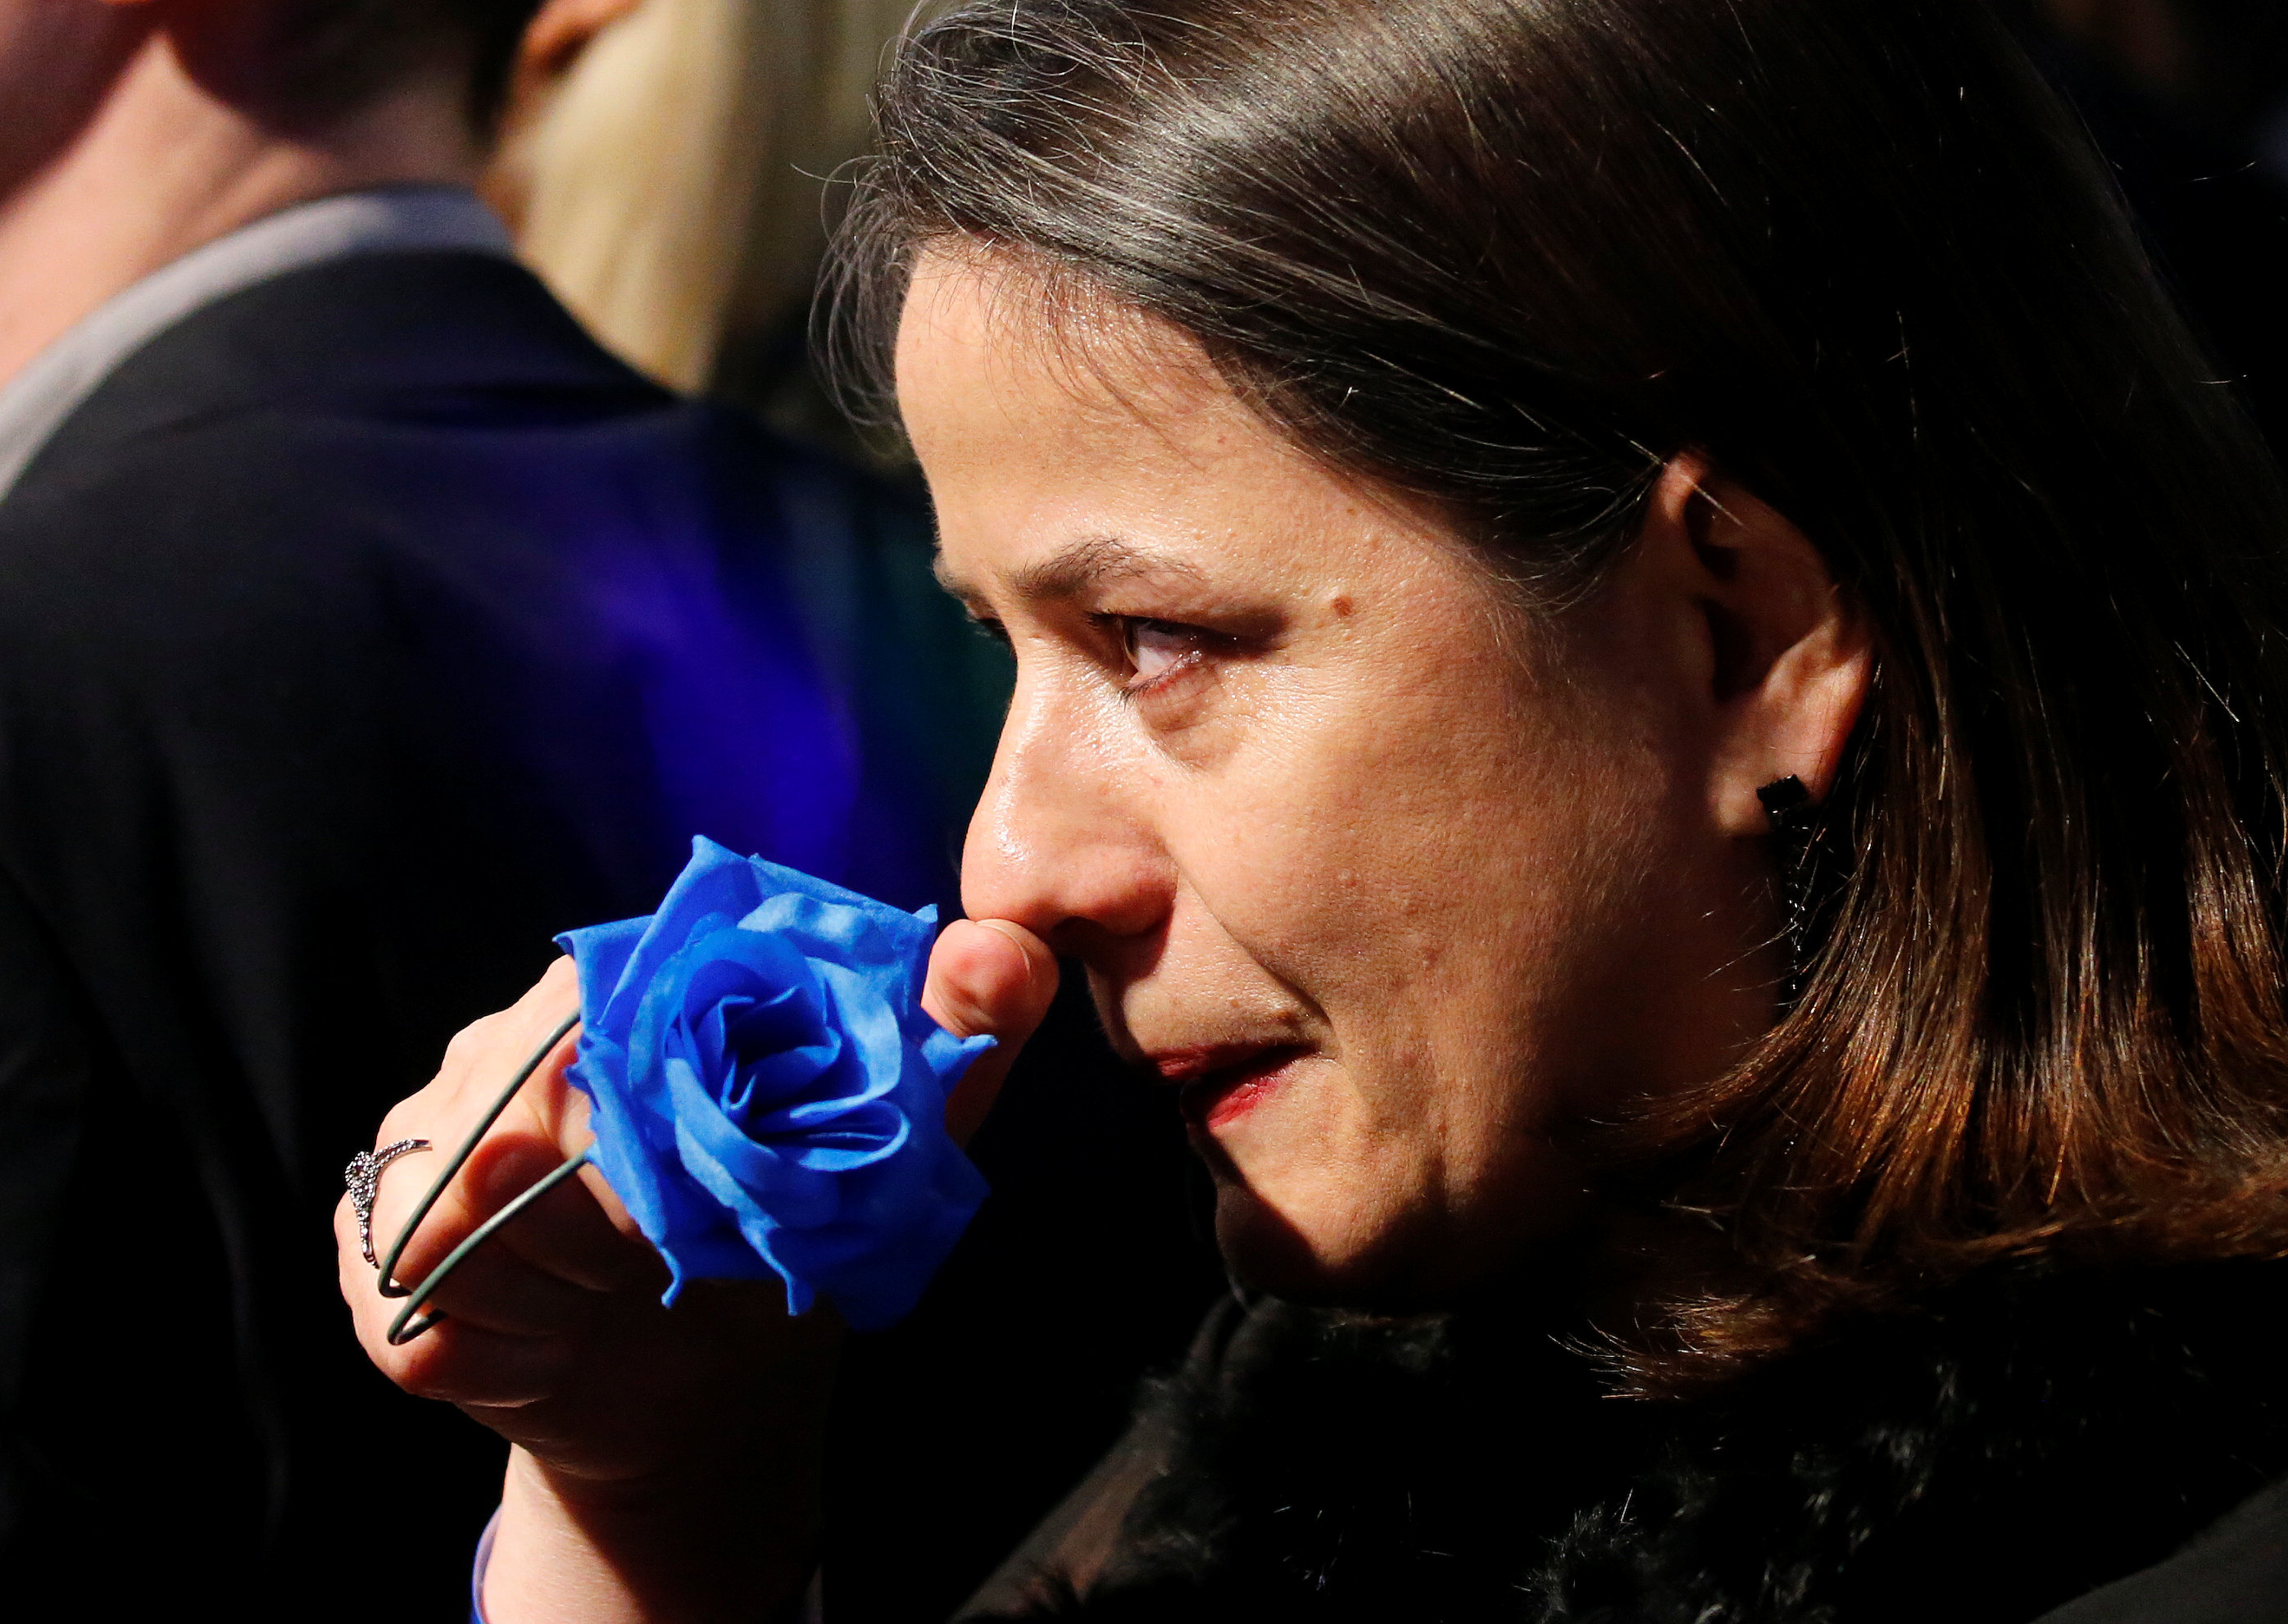 A supporter of Marine Le Pen, French National Front (FN) political party candidate for French 2017 presidential election, in tears at her campaign headquarters after her defeat in the secound round of 2017 French presidential election, Paris, France on May 7, 2017.   (REUTERS/Pascal Rossignol)